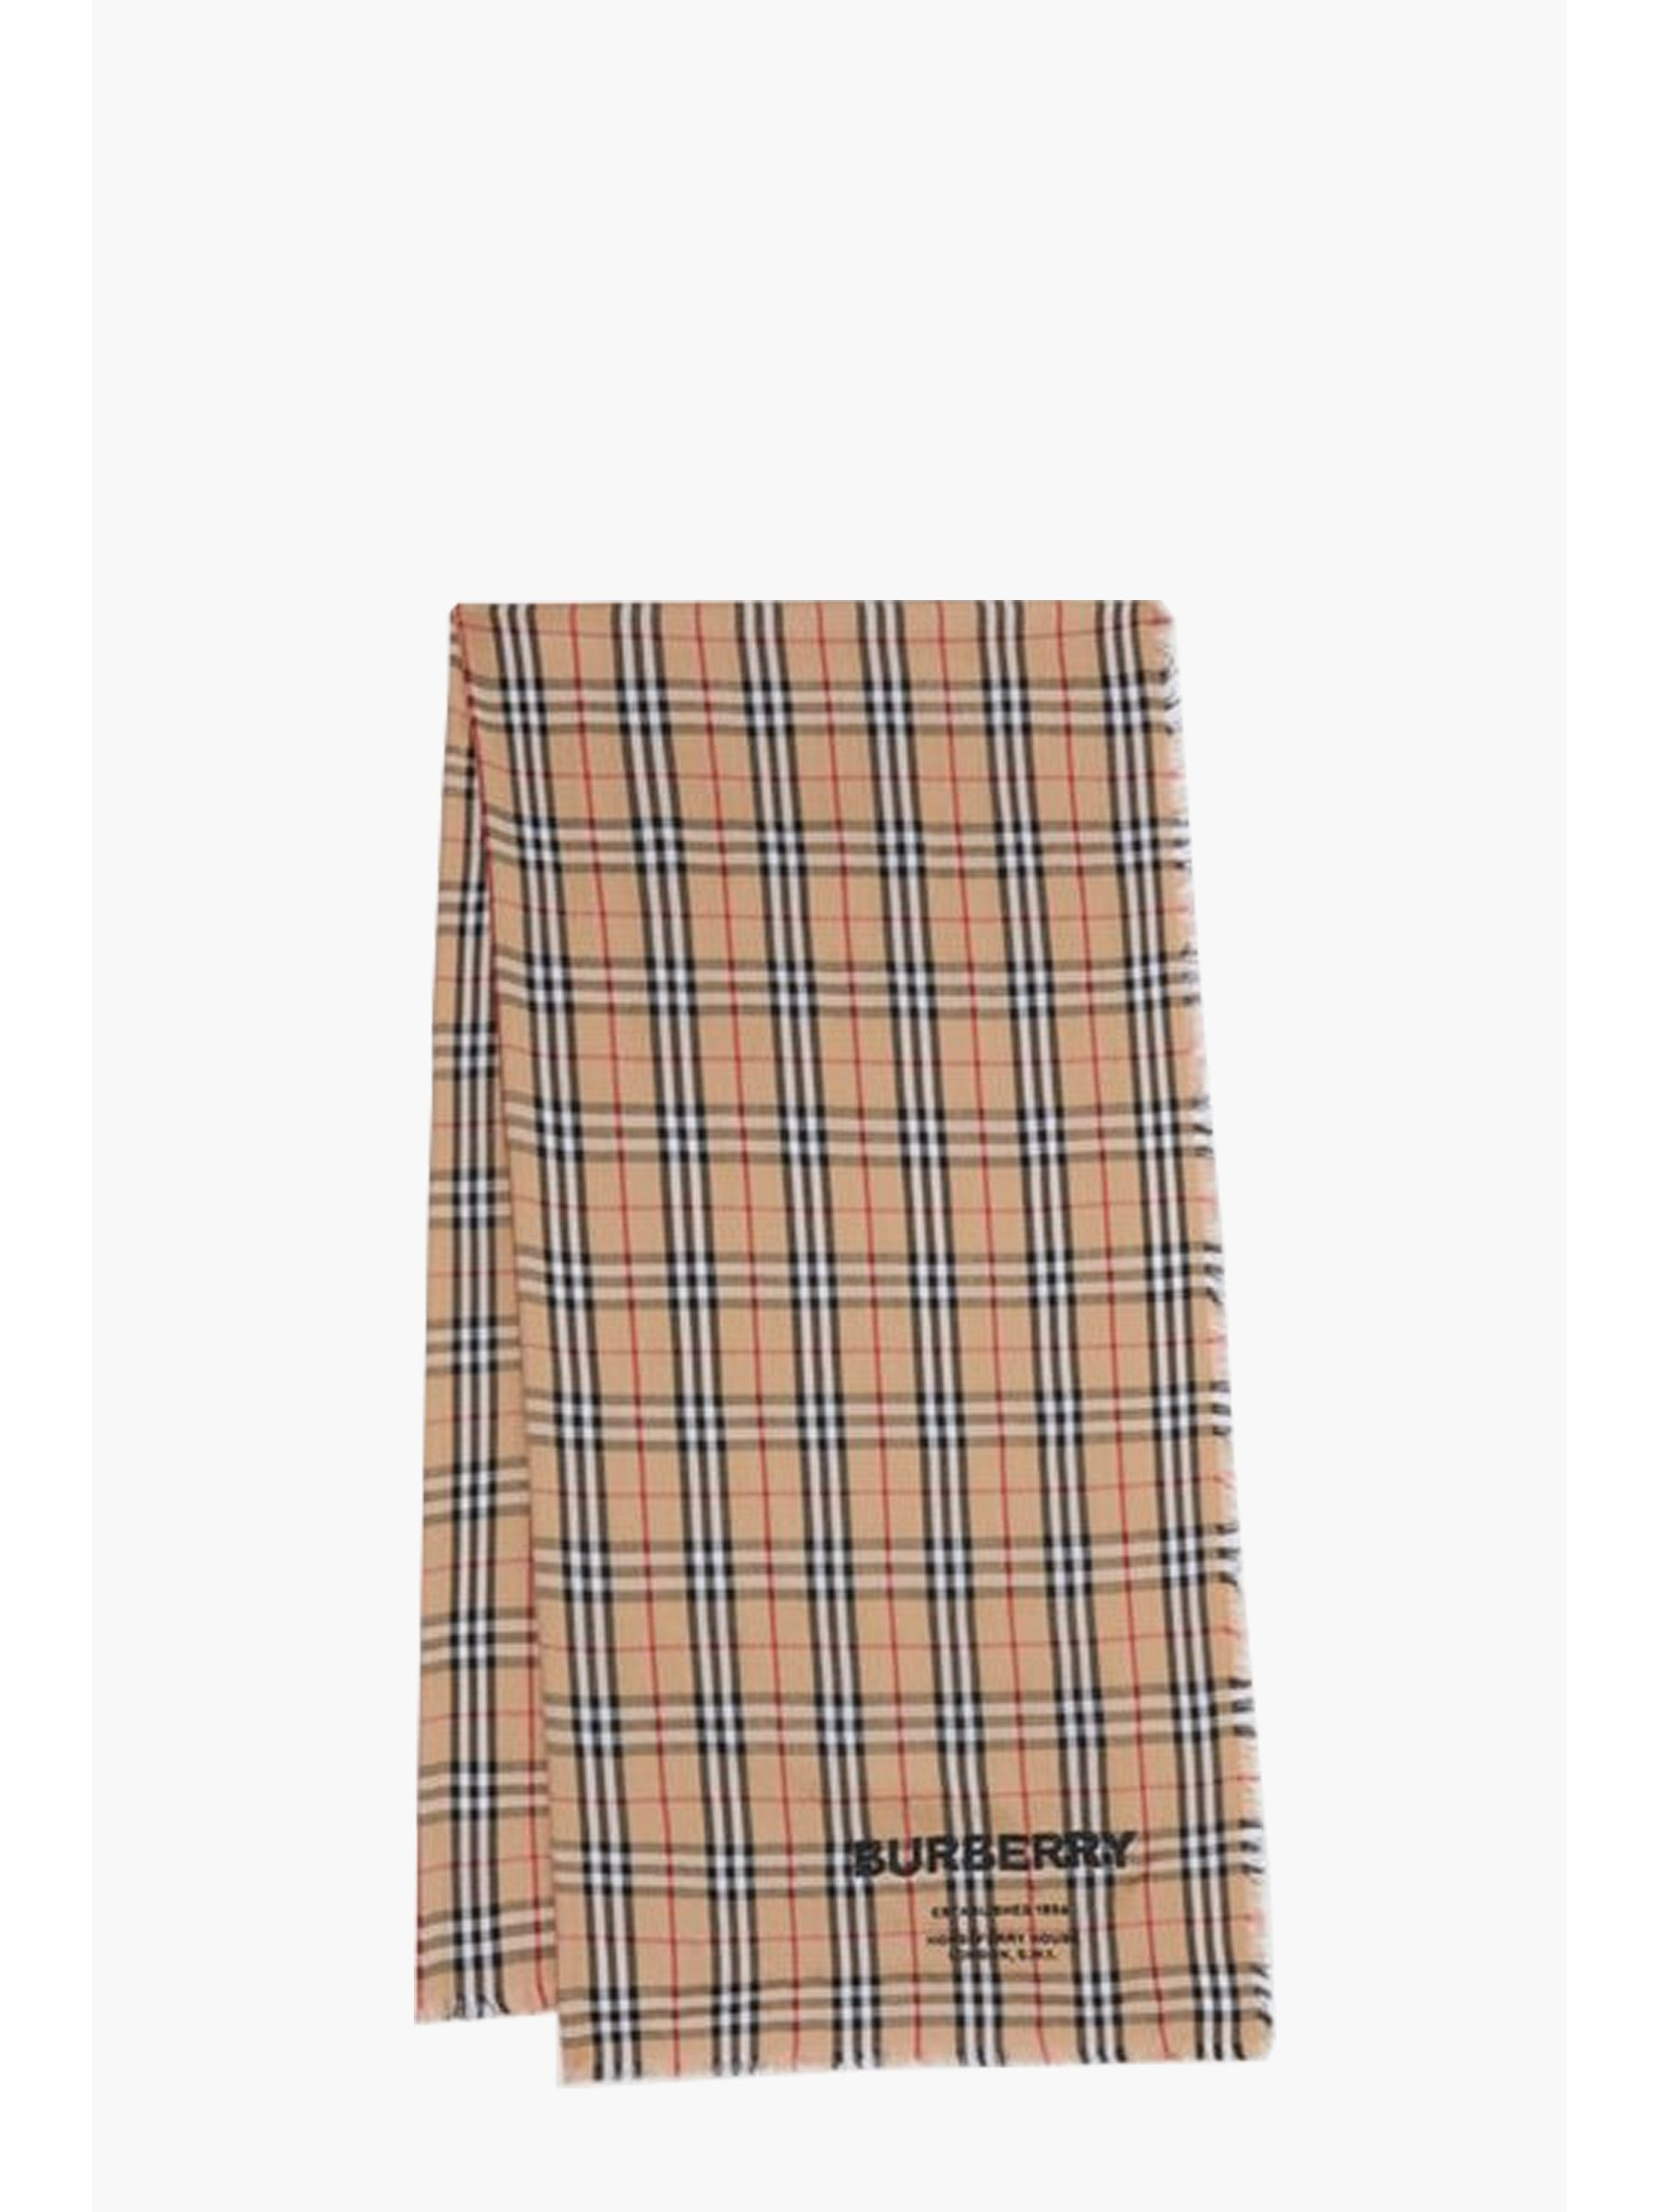 111146752_burberry_Embroidered Vintage Check Lightweight Cashmere Scarf_camel.jpg